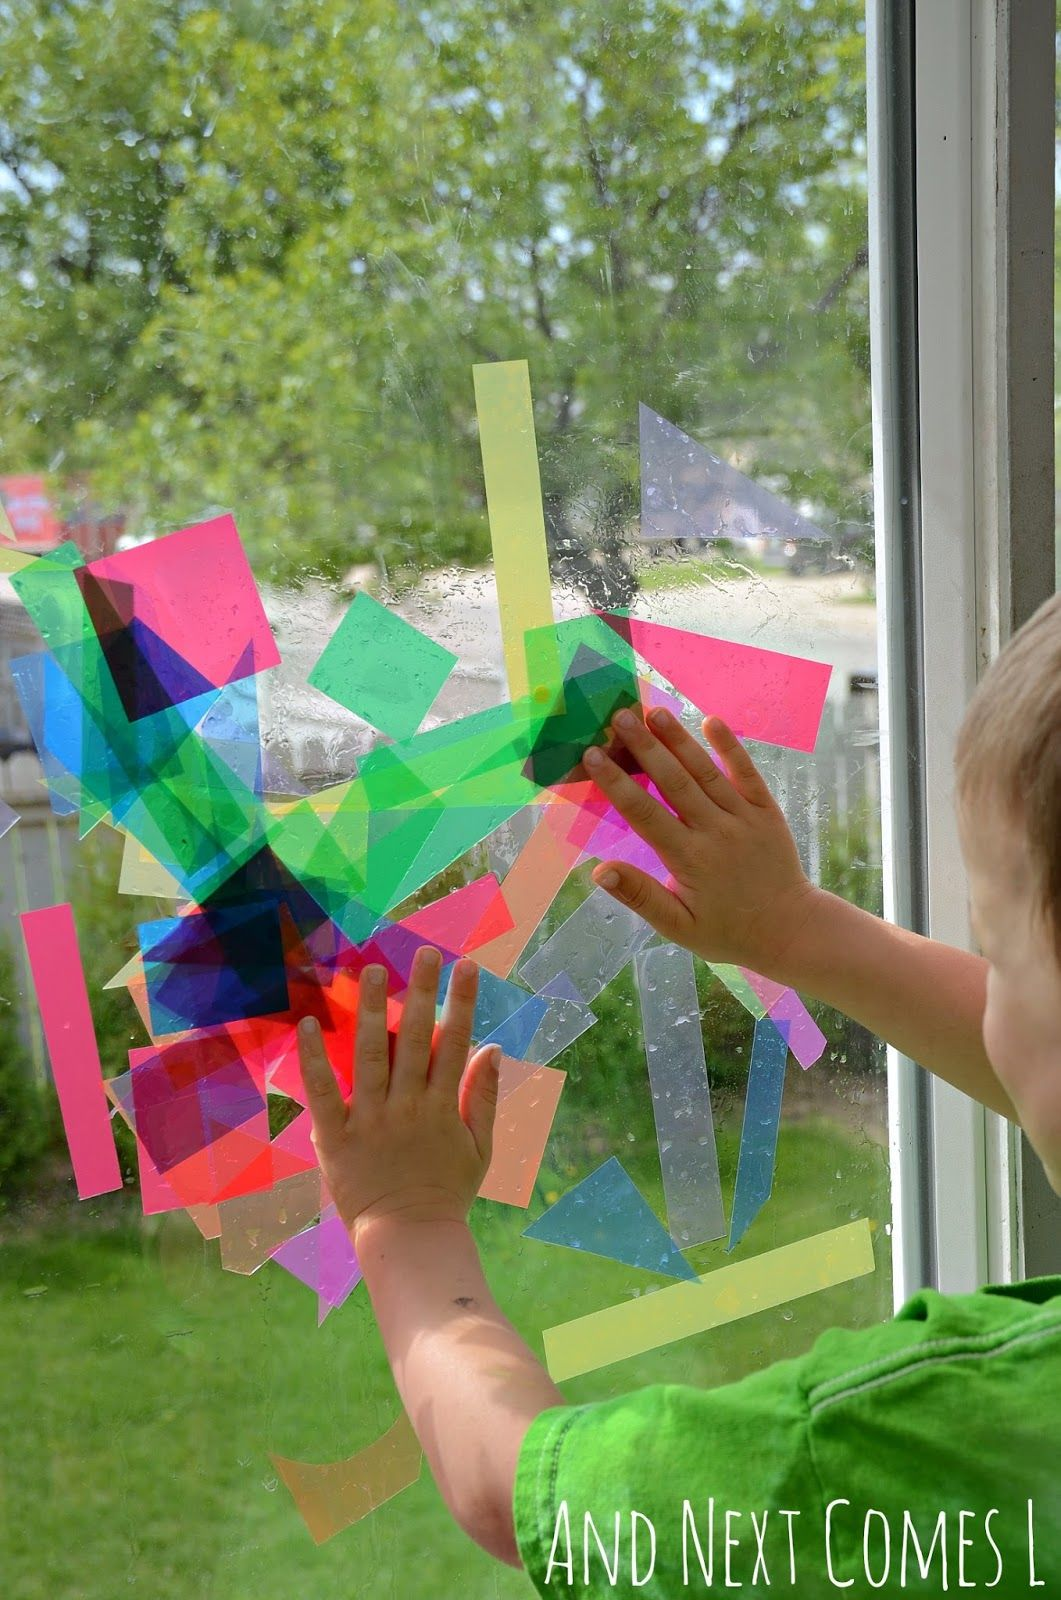 Kids Crafts Ideas At Home Part - 41: Donu0027t Worry U2014 Weu0027re Not Suggesting You Surrender Your Patio Doors To Your  Kidsu0027 Artistic Ambitions. This Activity Uses A Clever Dollar-store Find And  Just ...